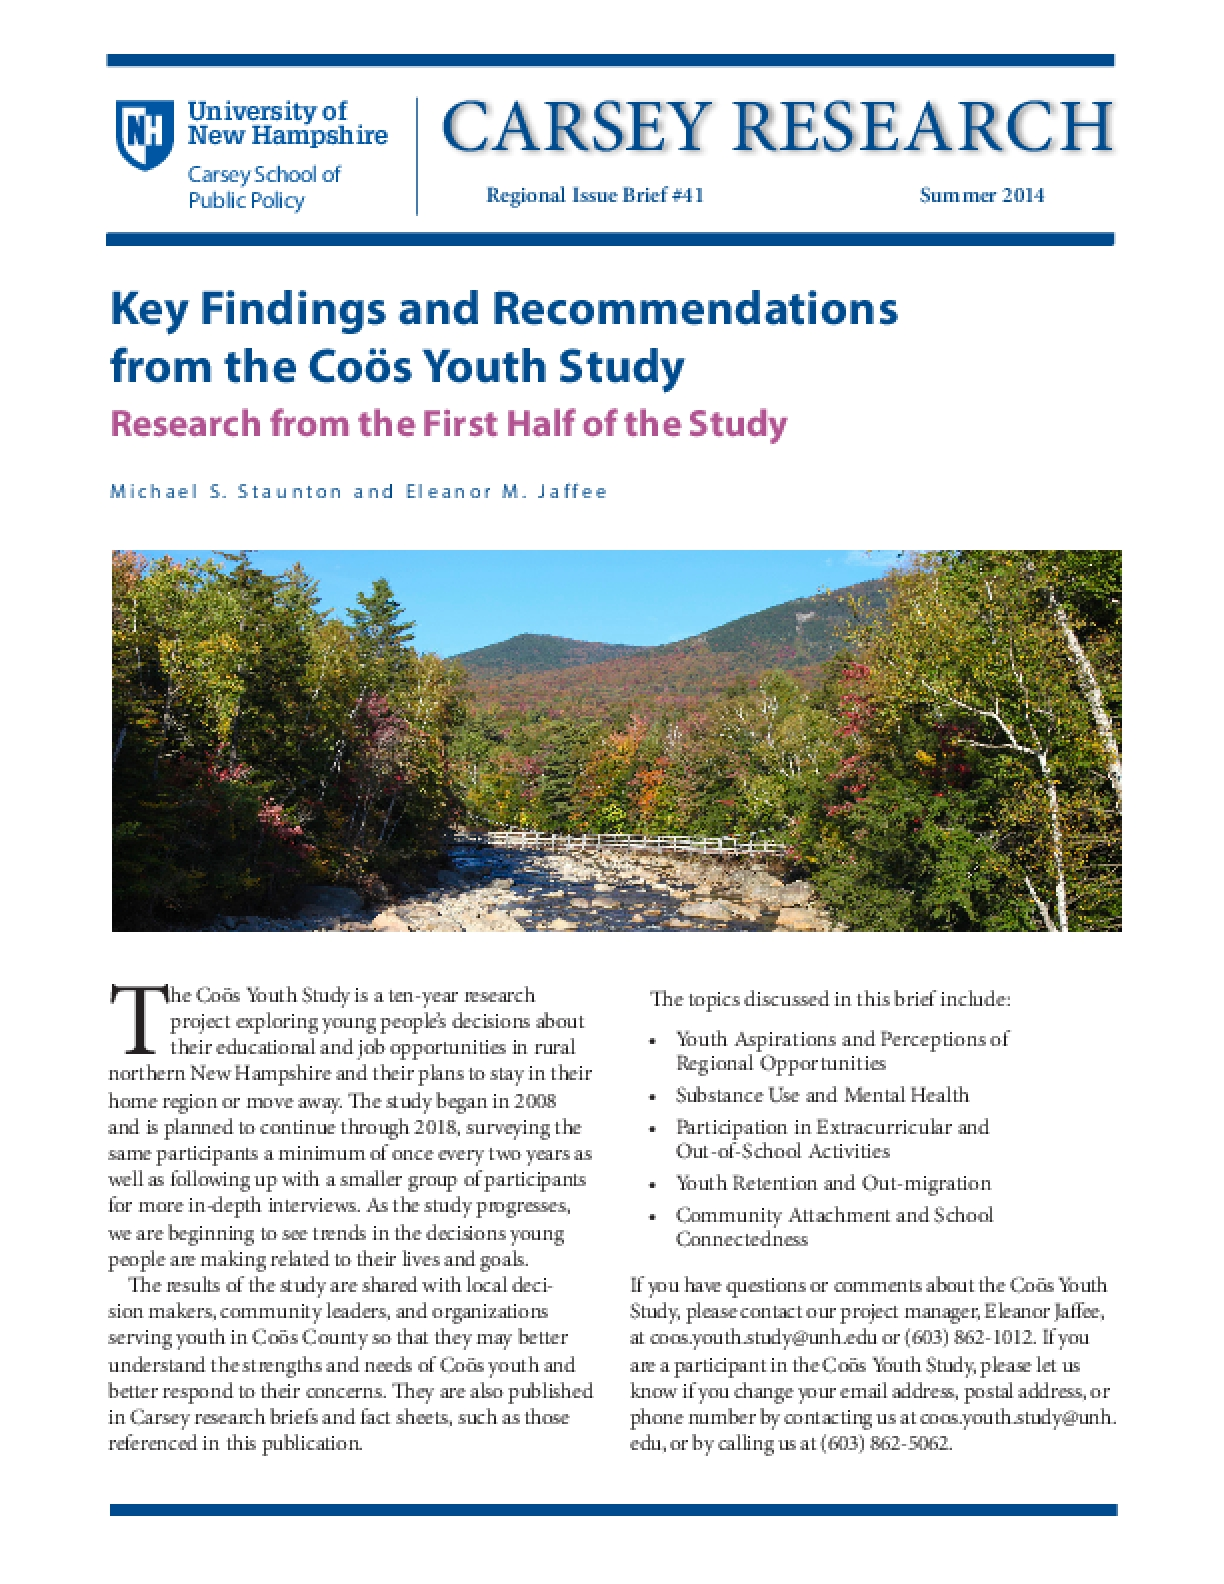 Key Findings and Recommendations from the Coös Youth Study